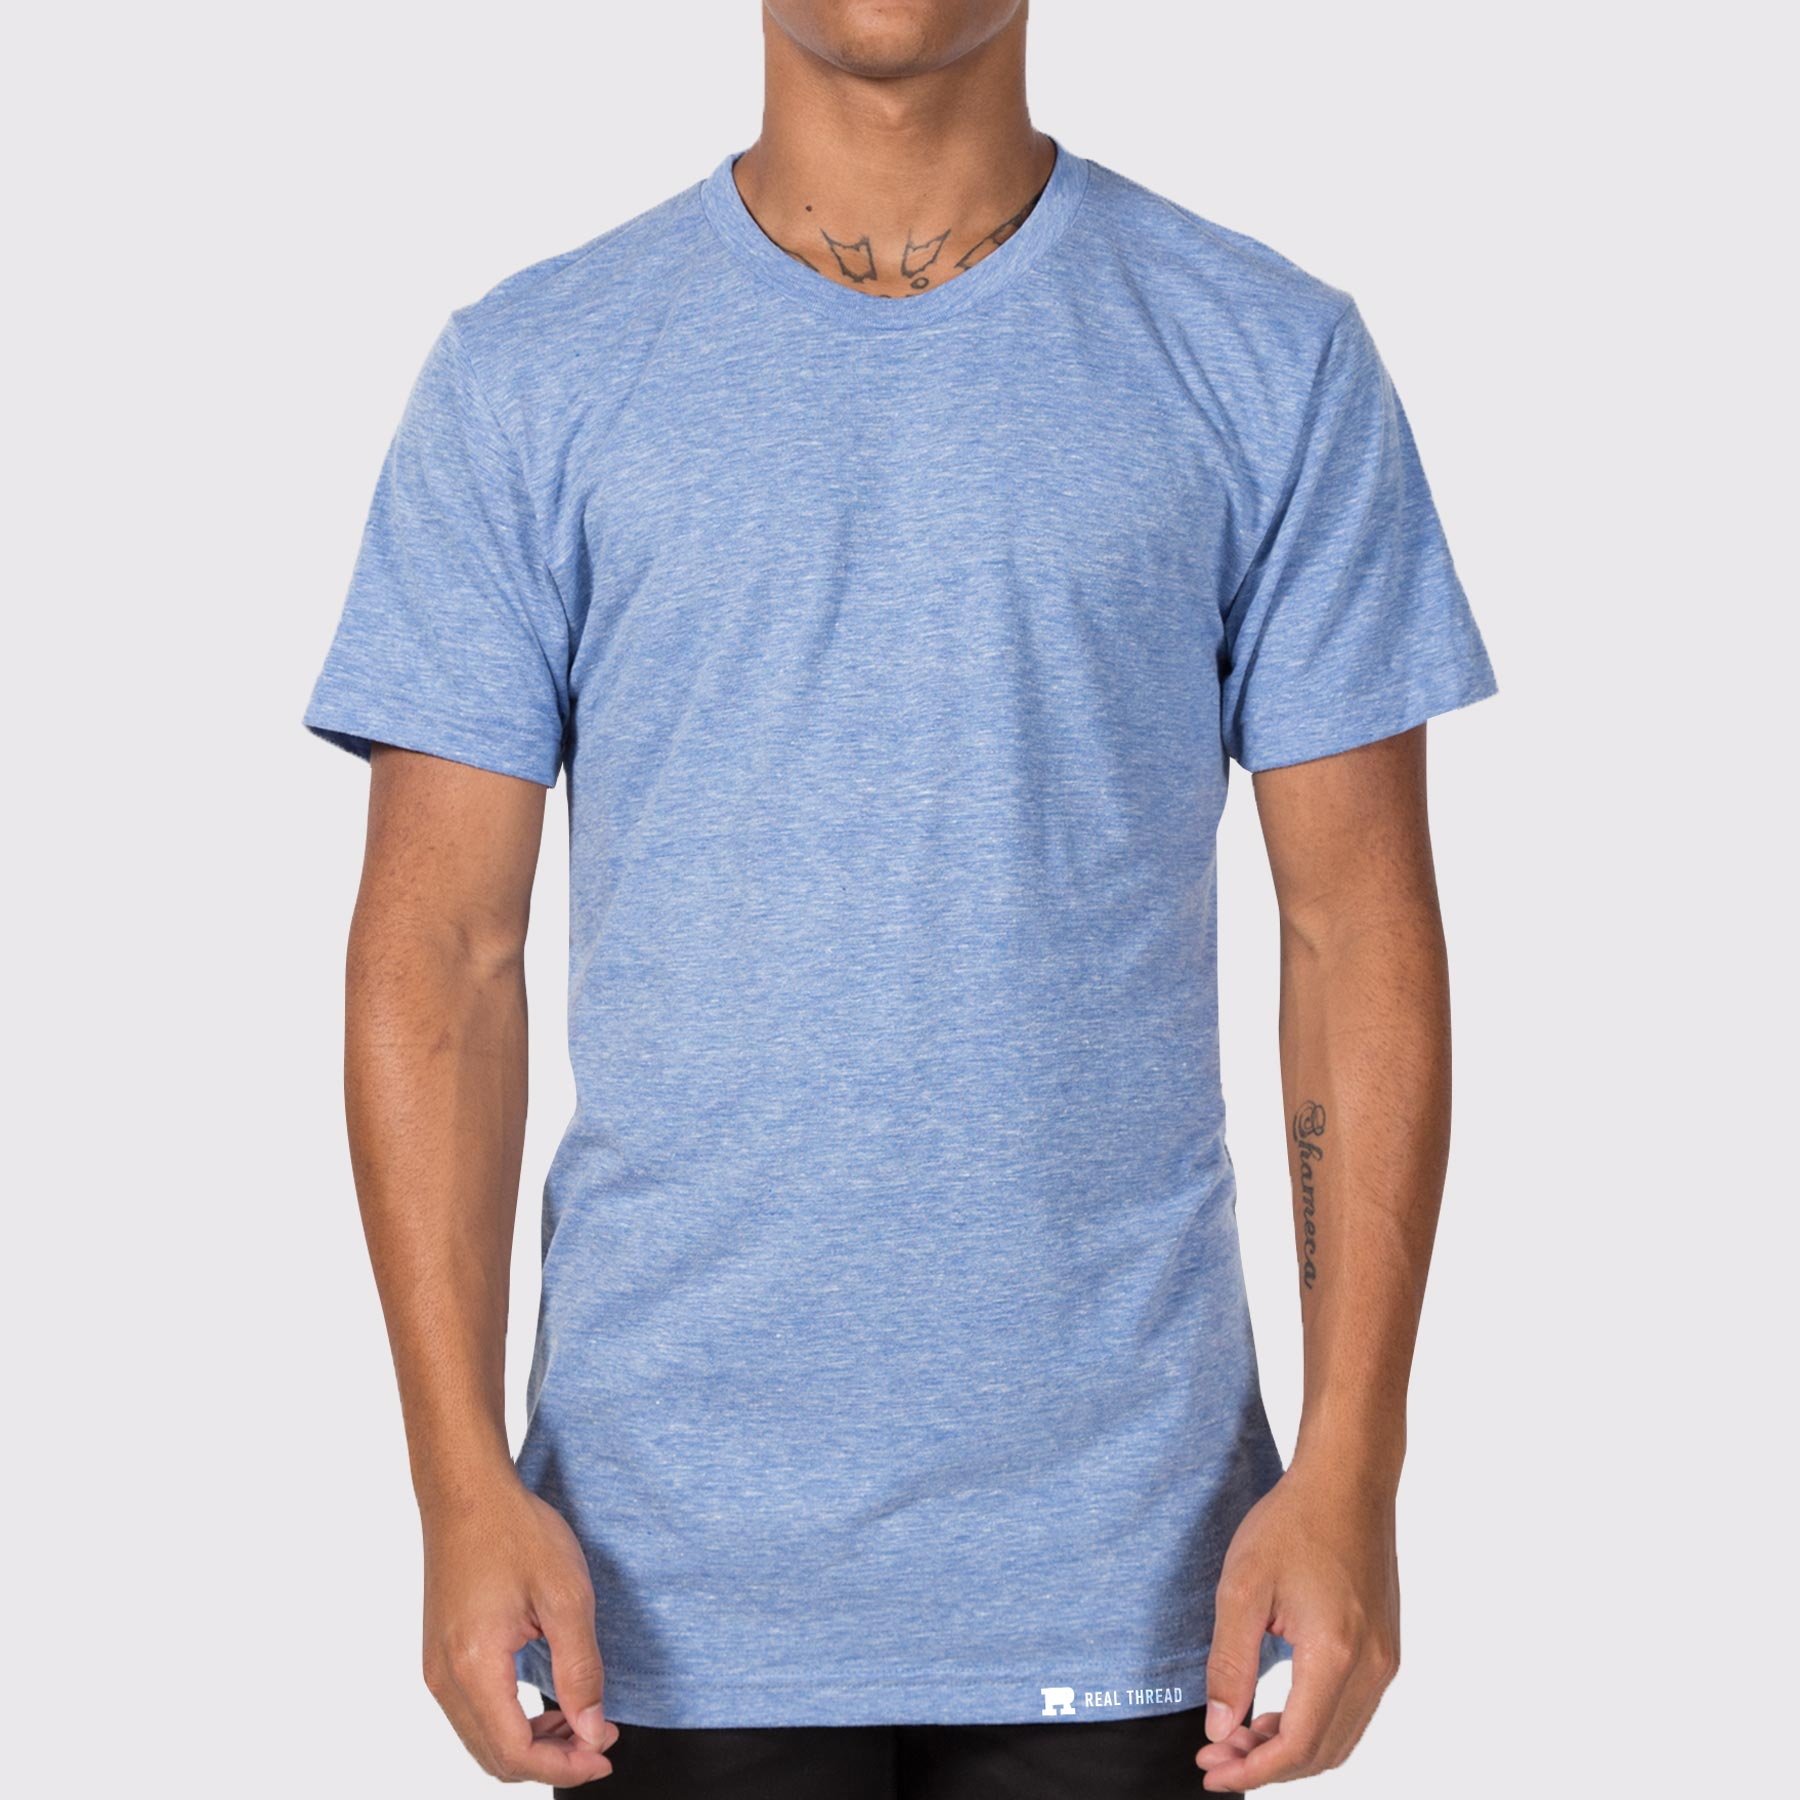 American Apparel TR401 Tri-blend Template Modeled